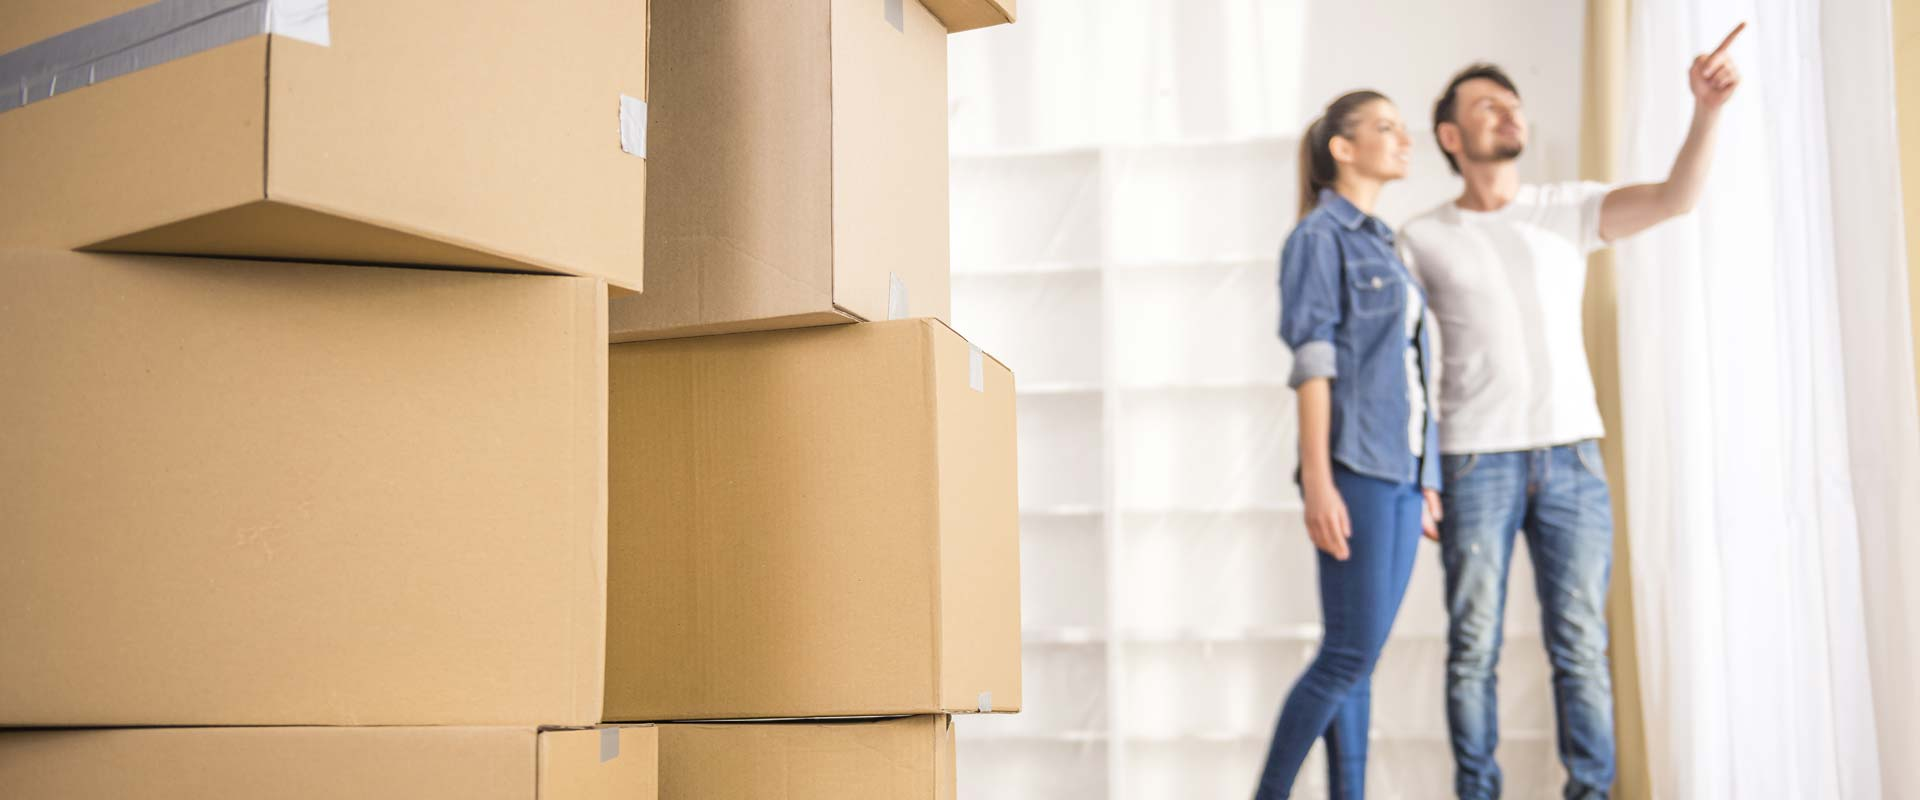 Moving boxes, and couple looking at new apartment